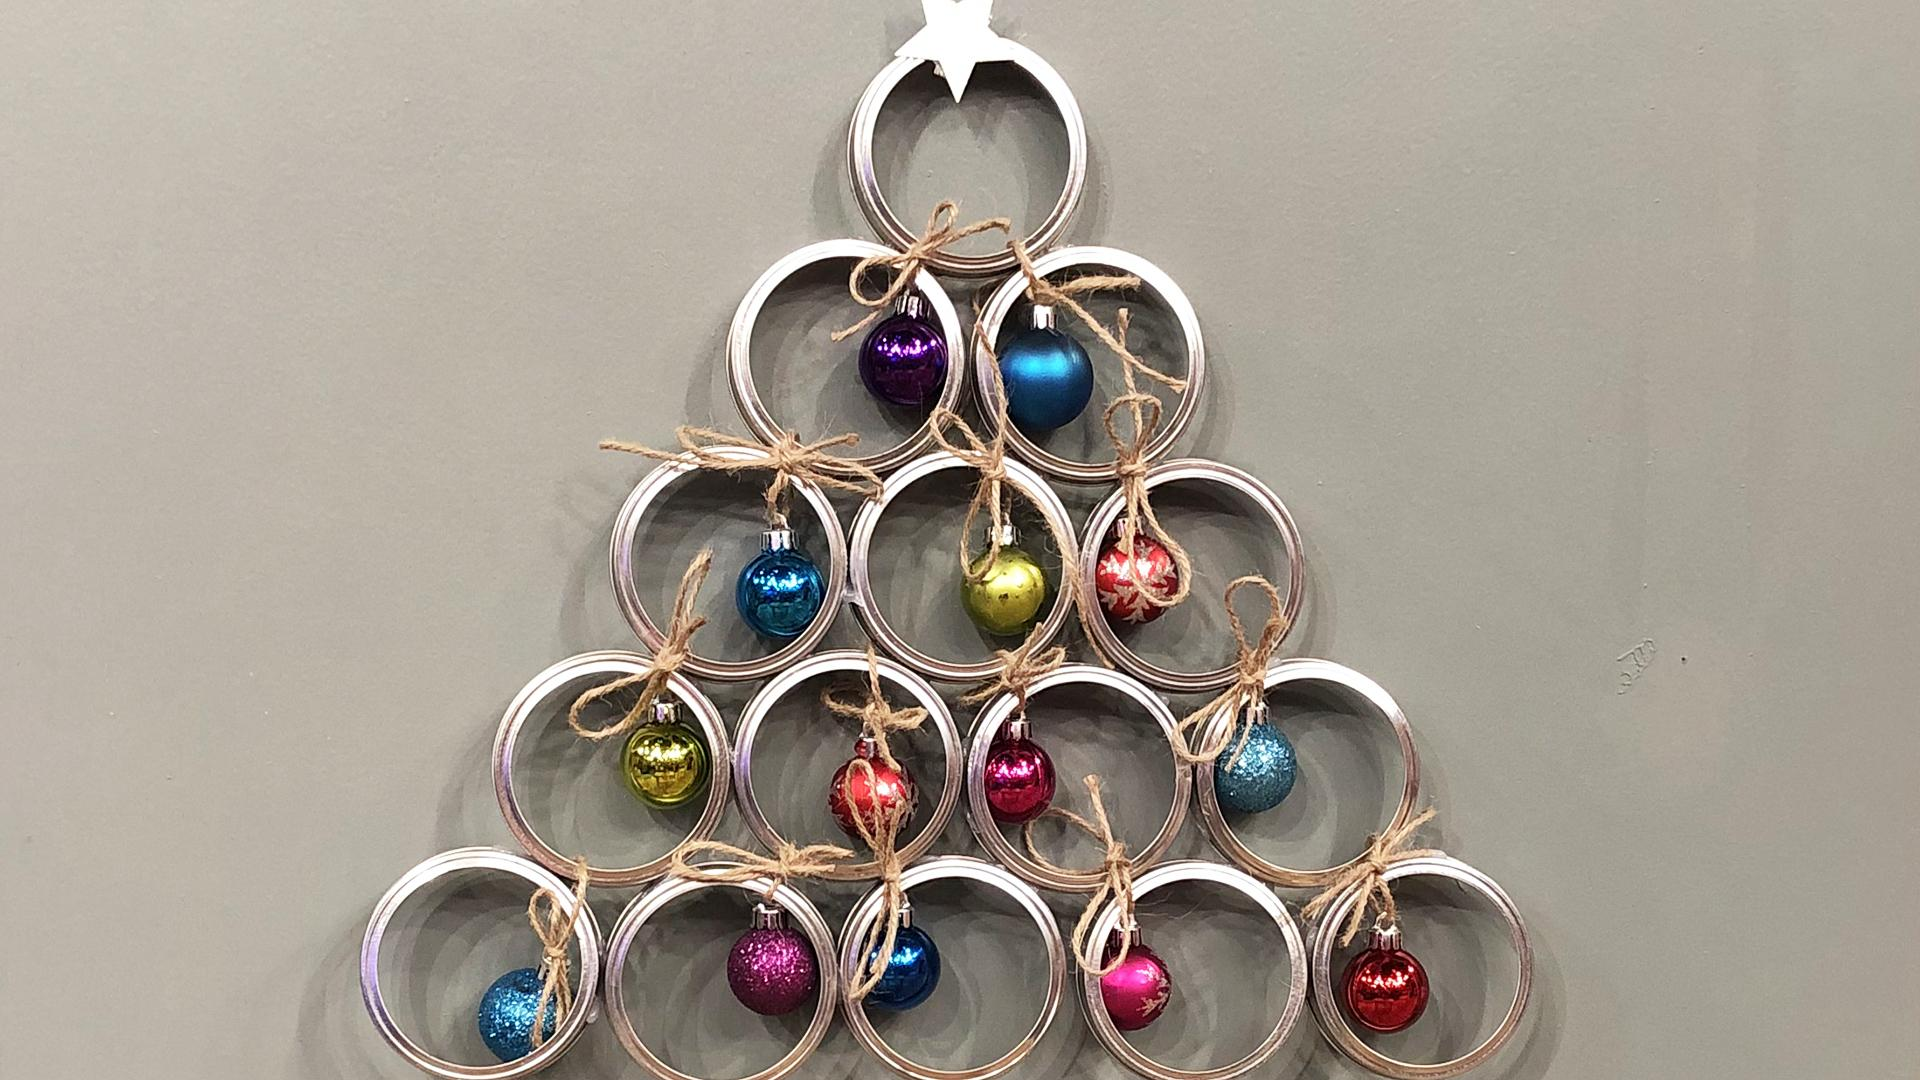 Diy Wall Christmas Trees 3 Ideas Perfect For Small Spaces Rachael Ray Show